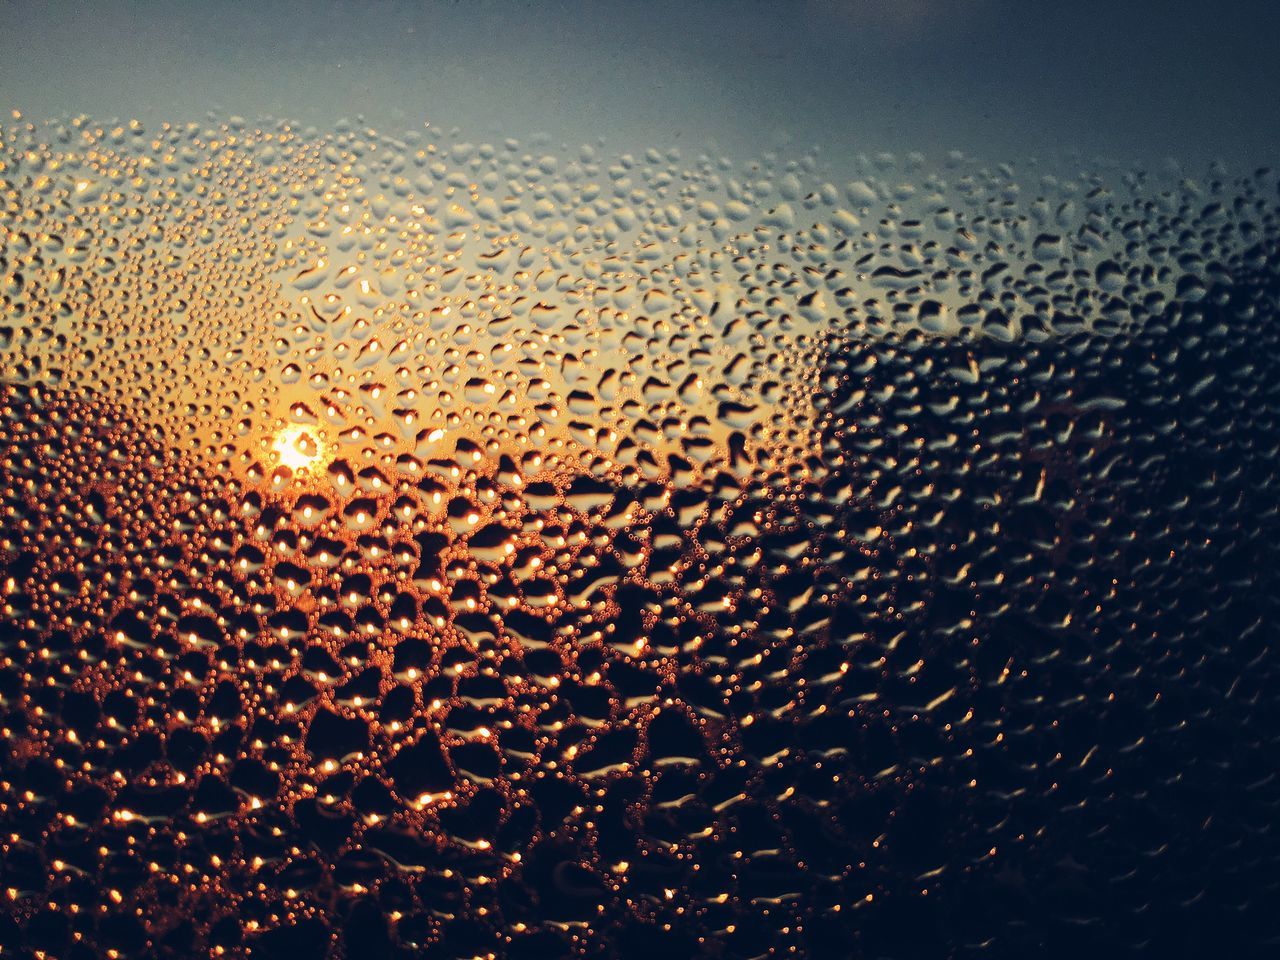 Detail Shot Of Waterdrops On Glass Against Sunset